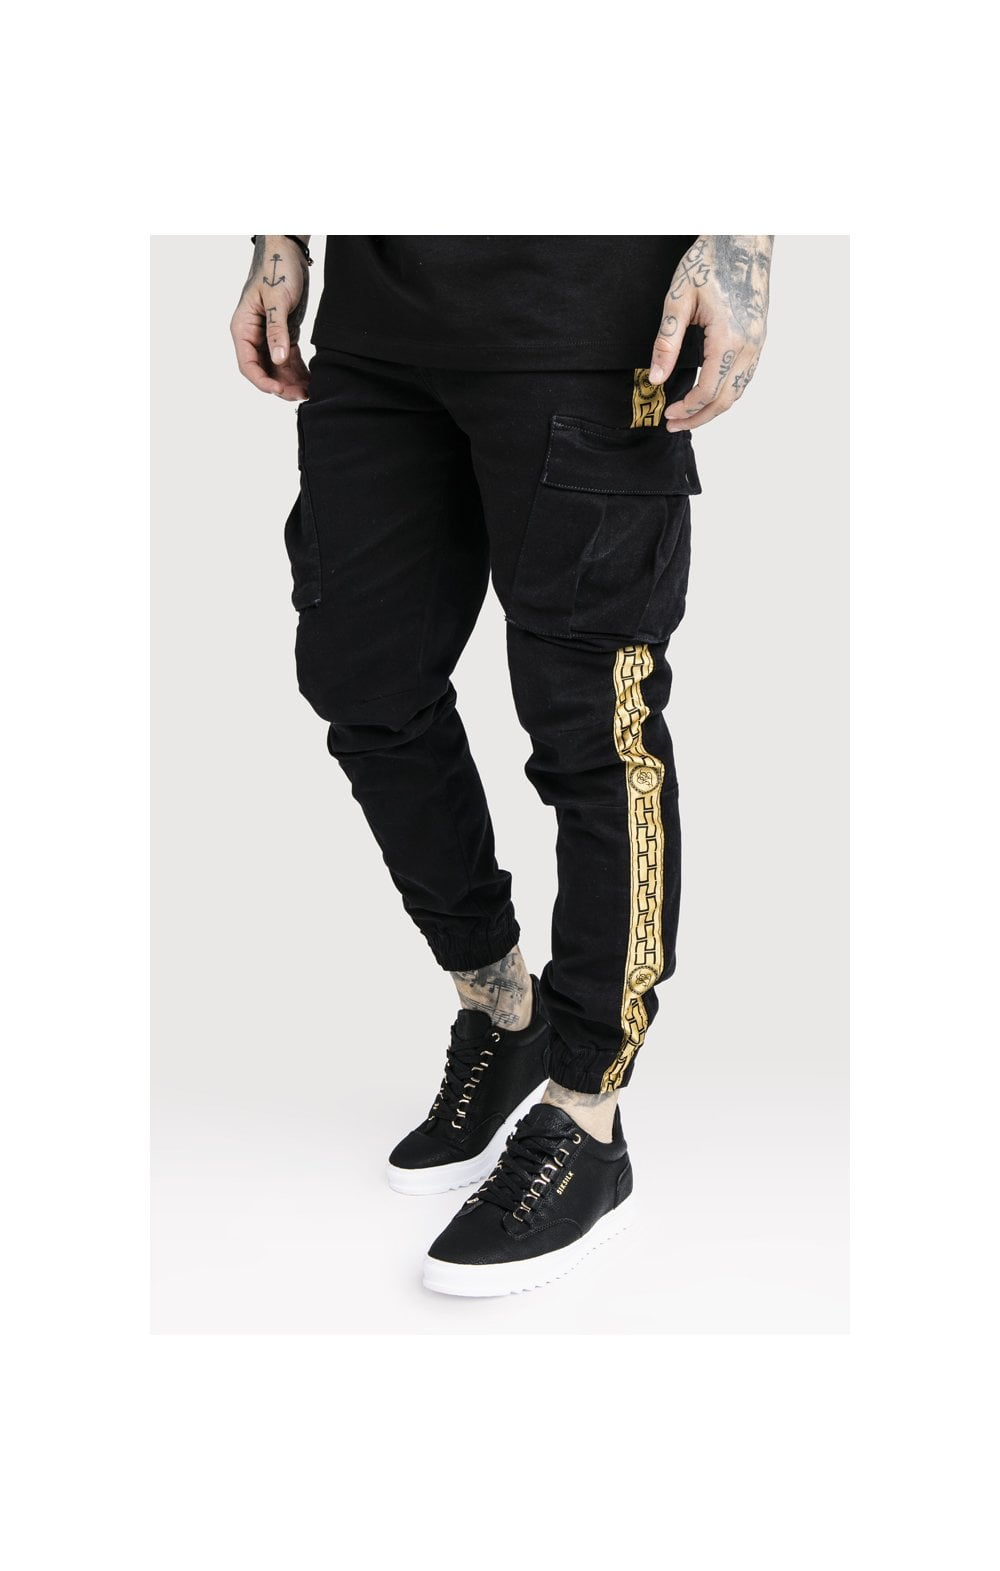 Load image into Gallery viewer, SikSilk x Dani Alves Cargo Pants - Black